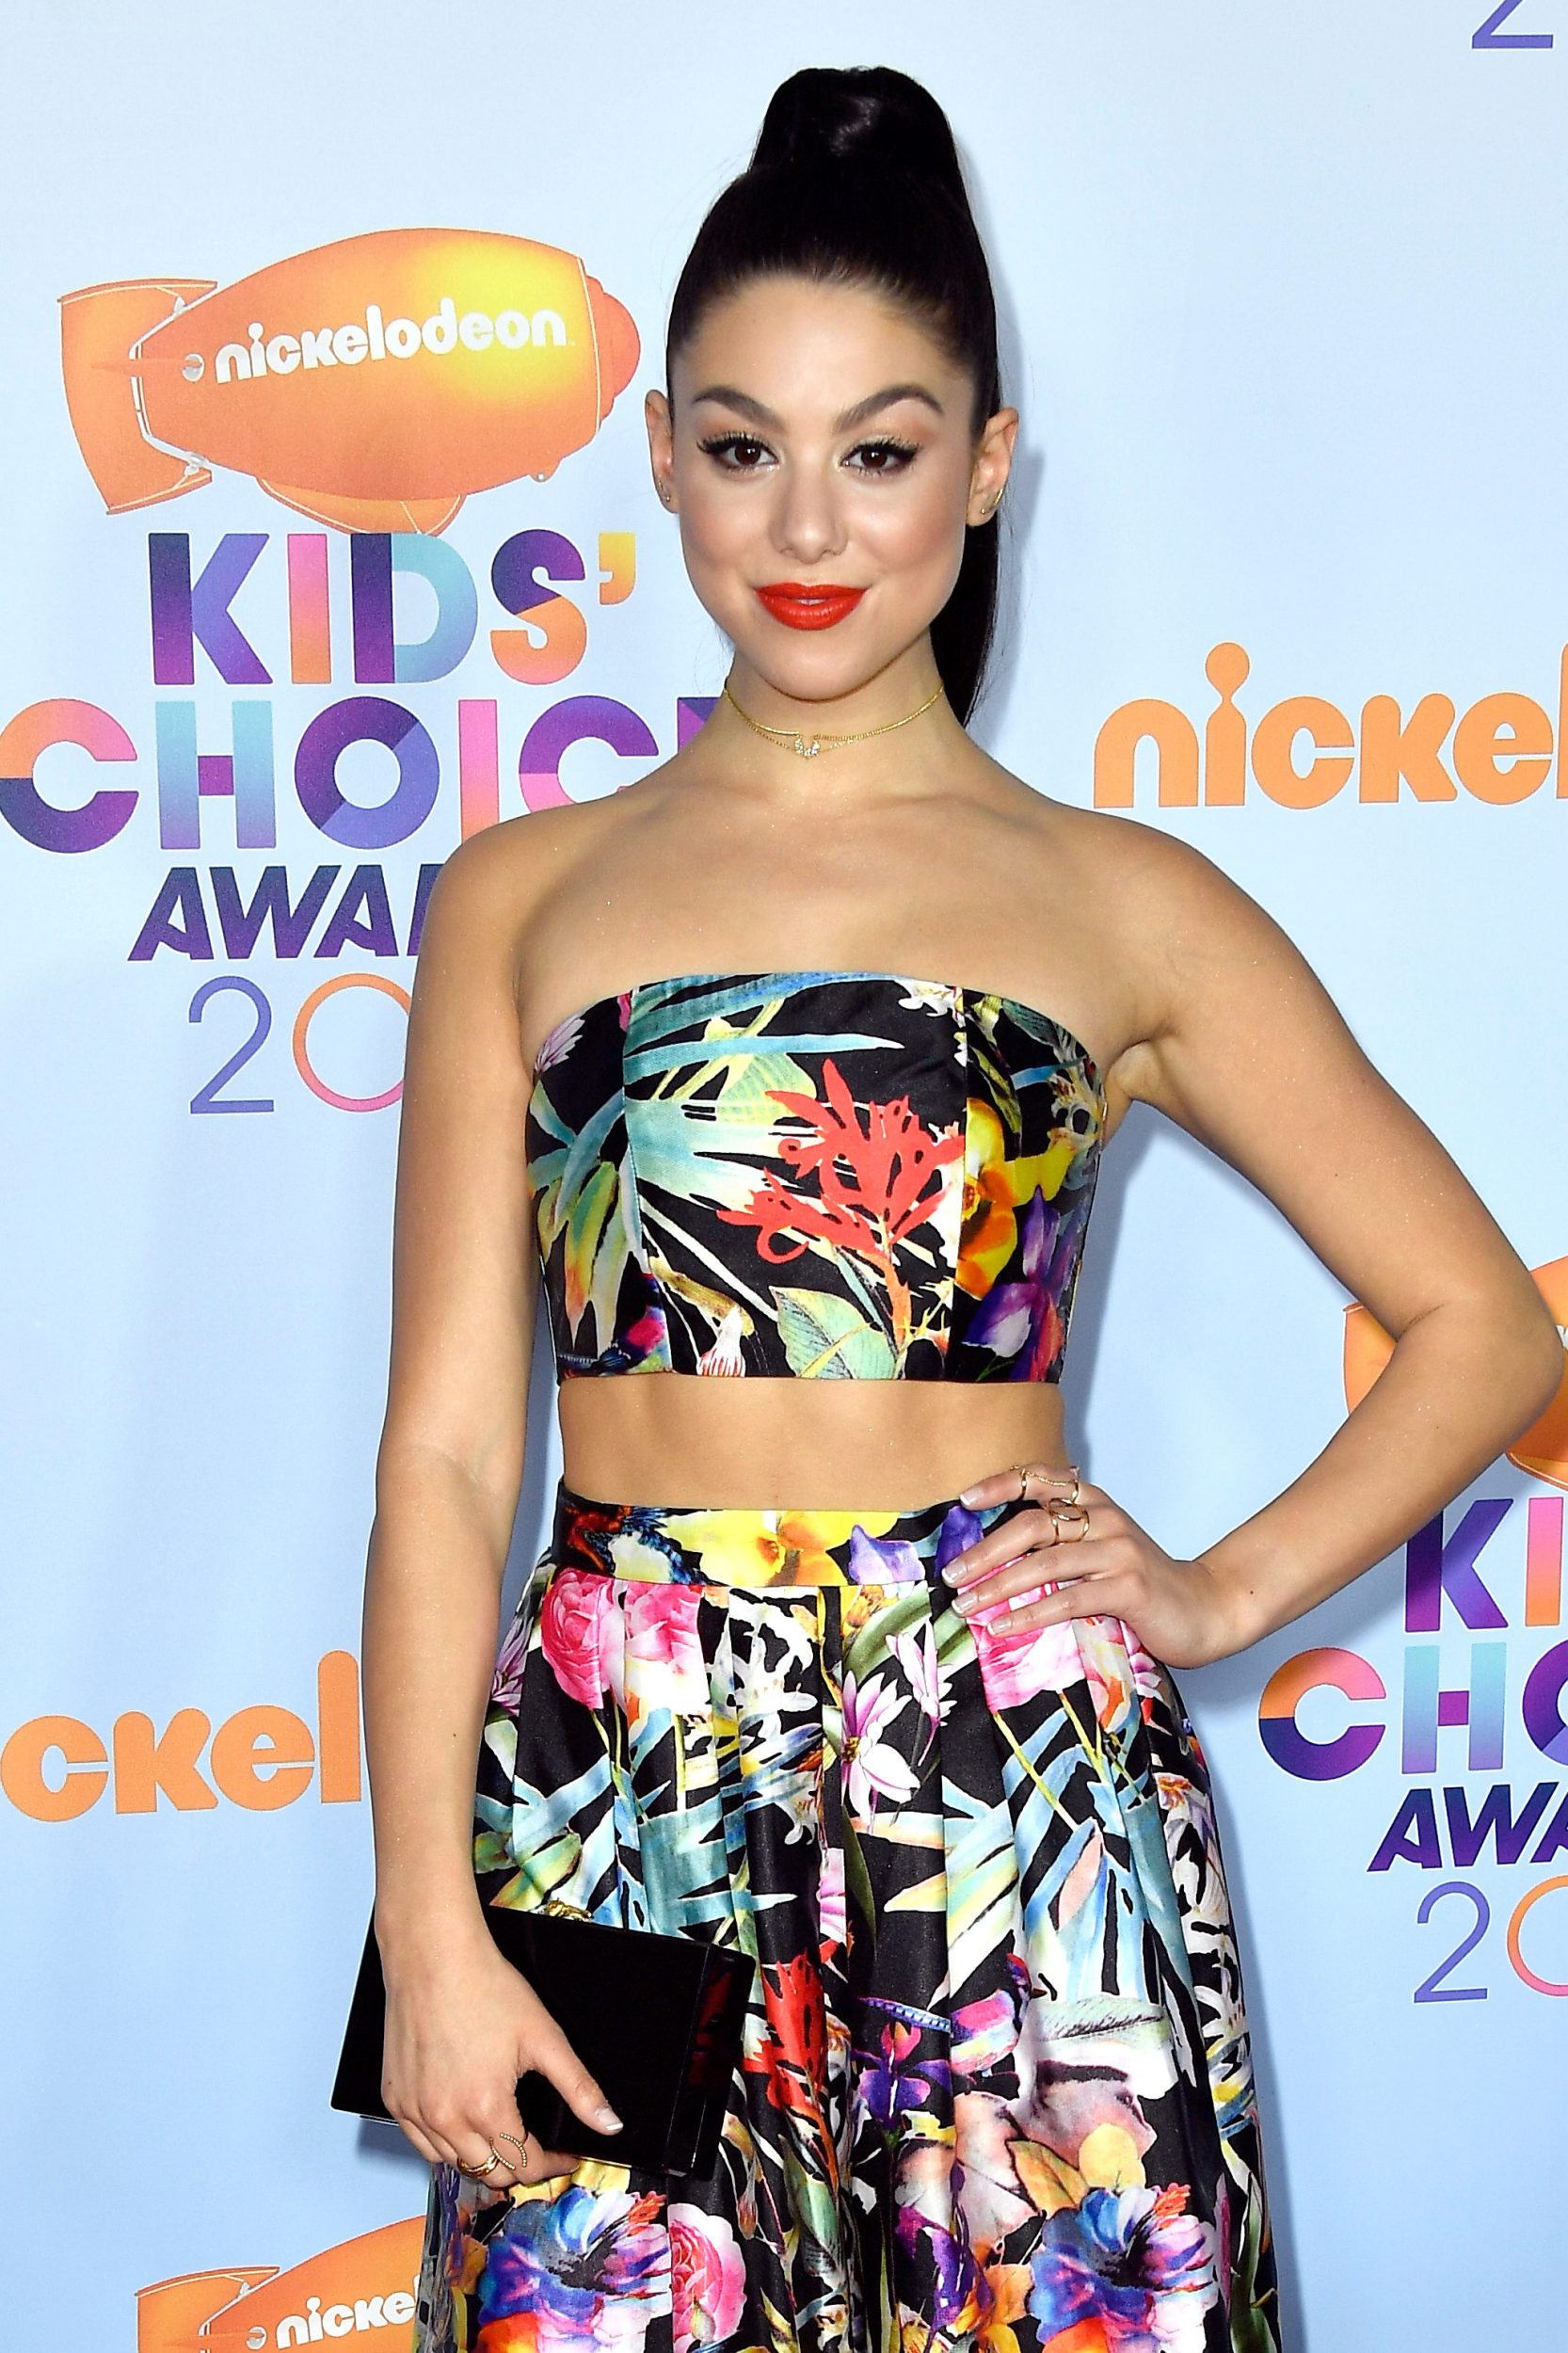 LOS ANGELES, CA - MARCH 11:  Actor Kira Kosarin at Nickelodeon's 2017 Kids' Choice Awards at USC Galen Center on March 11, 2017 in Los Angeles, California.  (Photo by Frazer Harrison/Getty Images - Issued to Media by Nickelodeon)